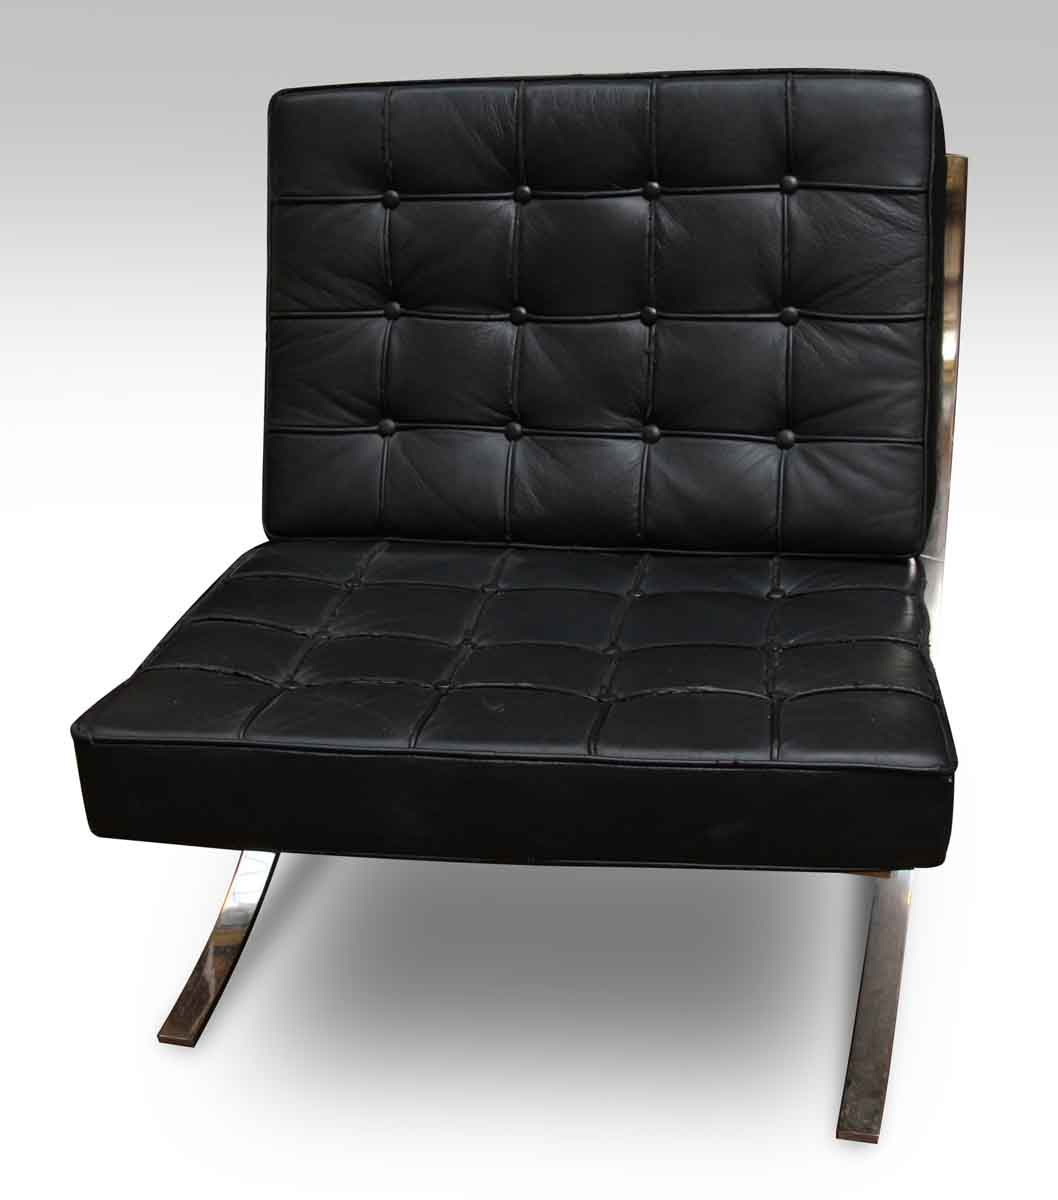 barcelona chair leather desk mats for laminate floors black style olde good things